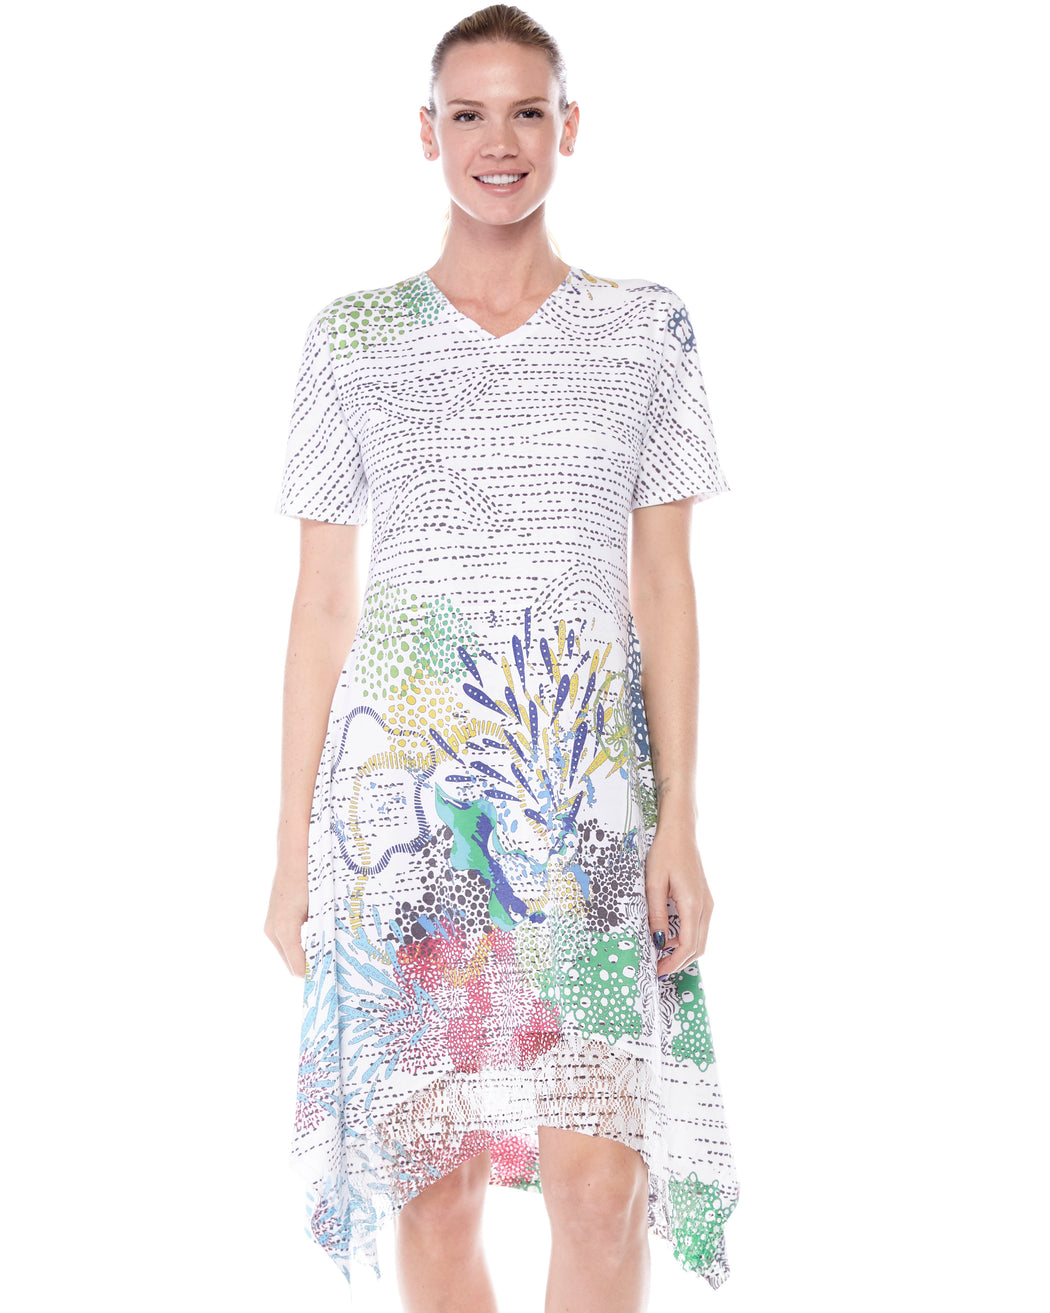 Handkerchief Hem T-shirt Dress in Coral Reef Print - Atelier5